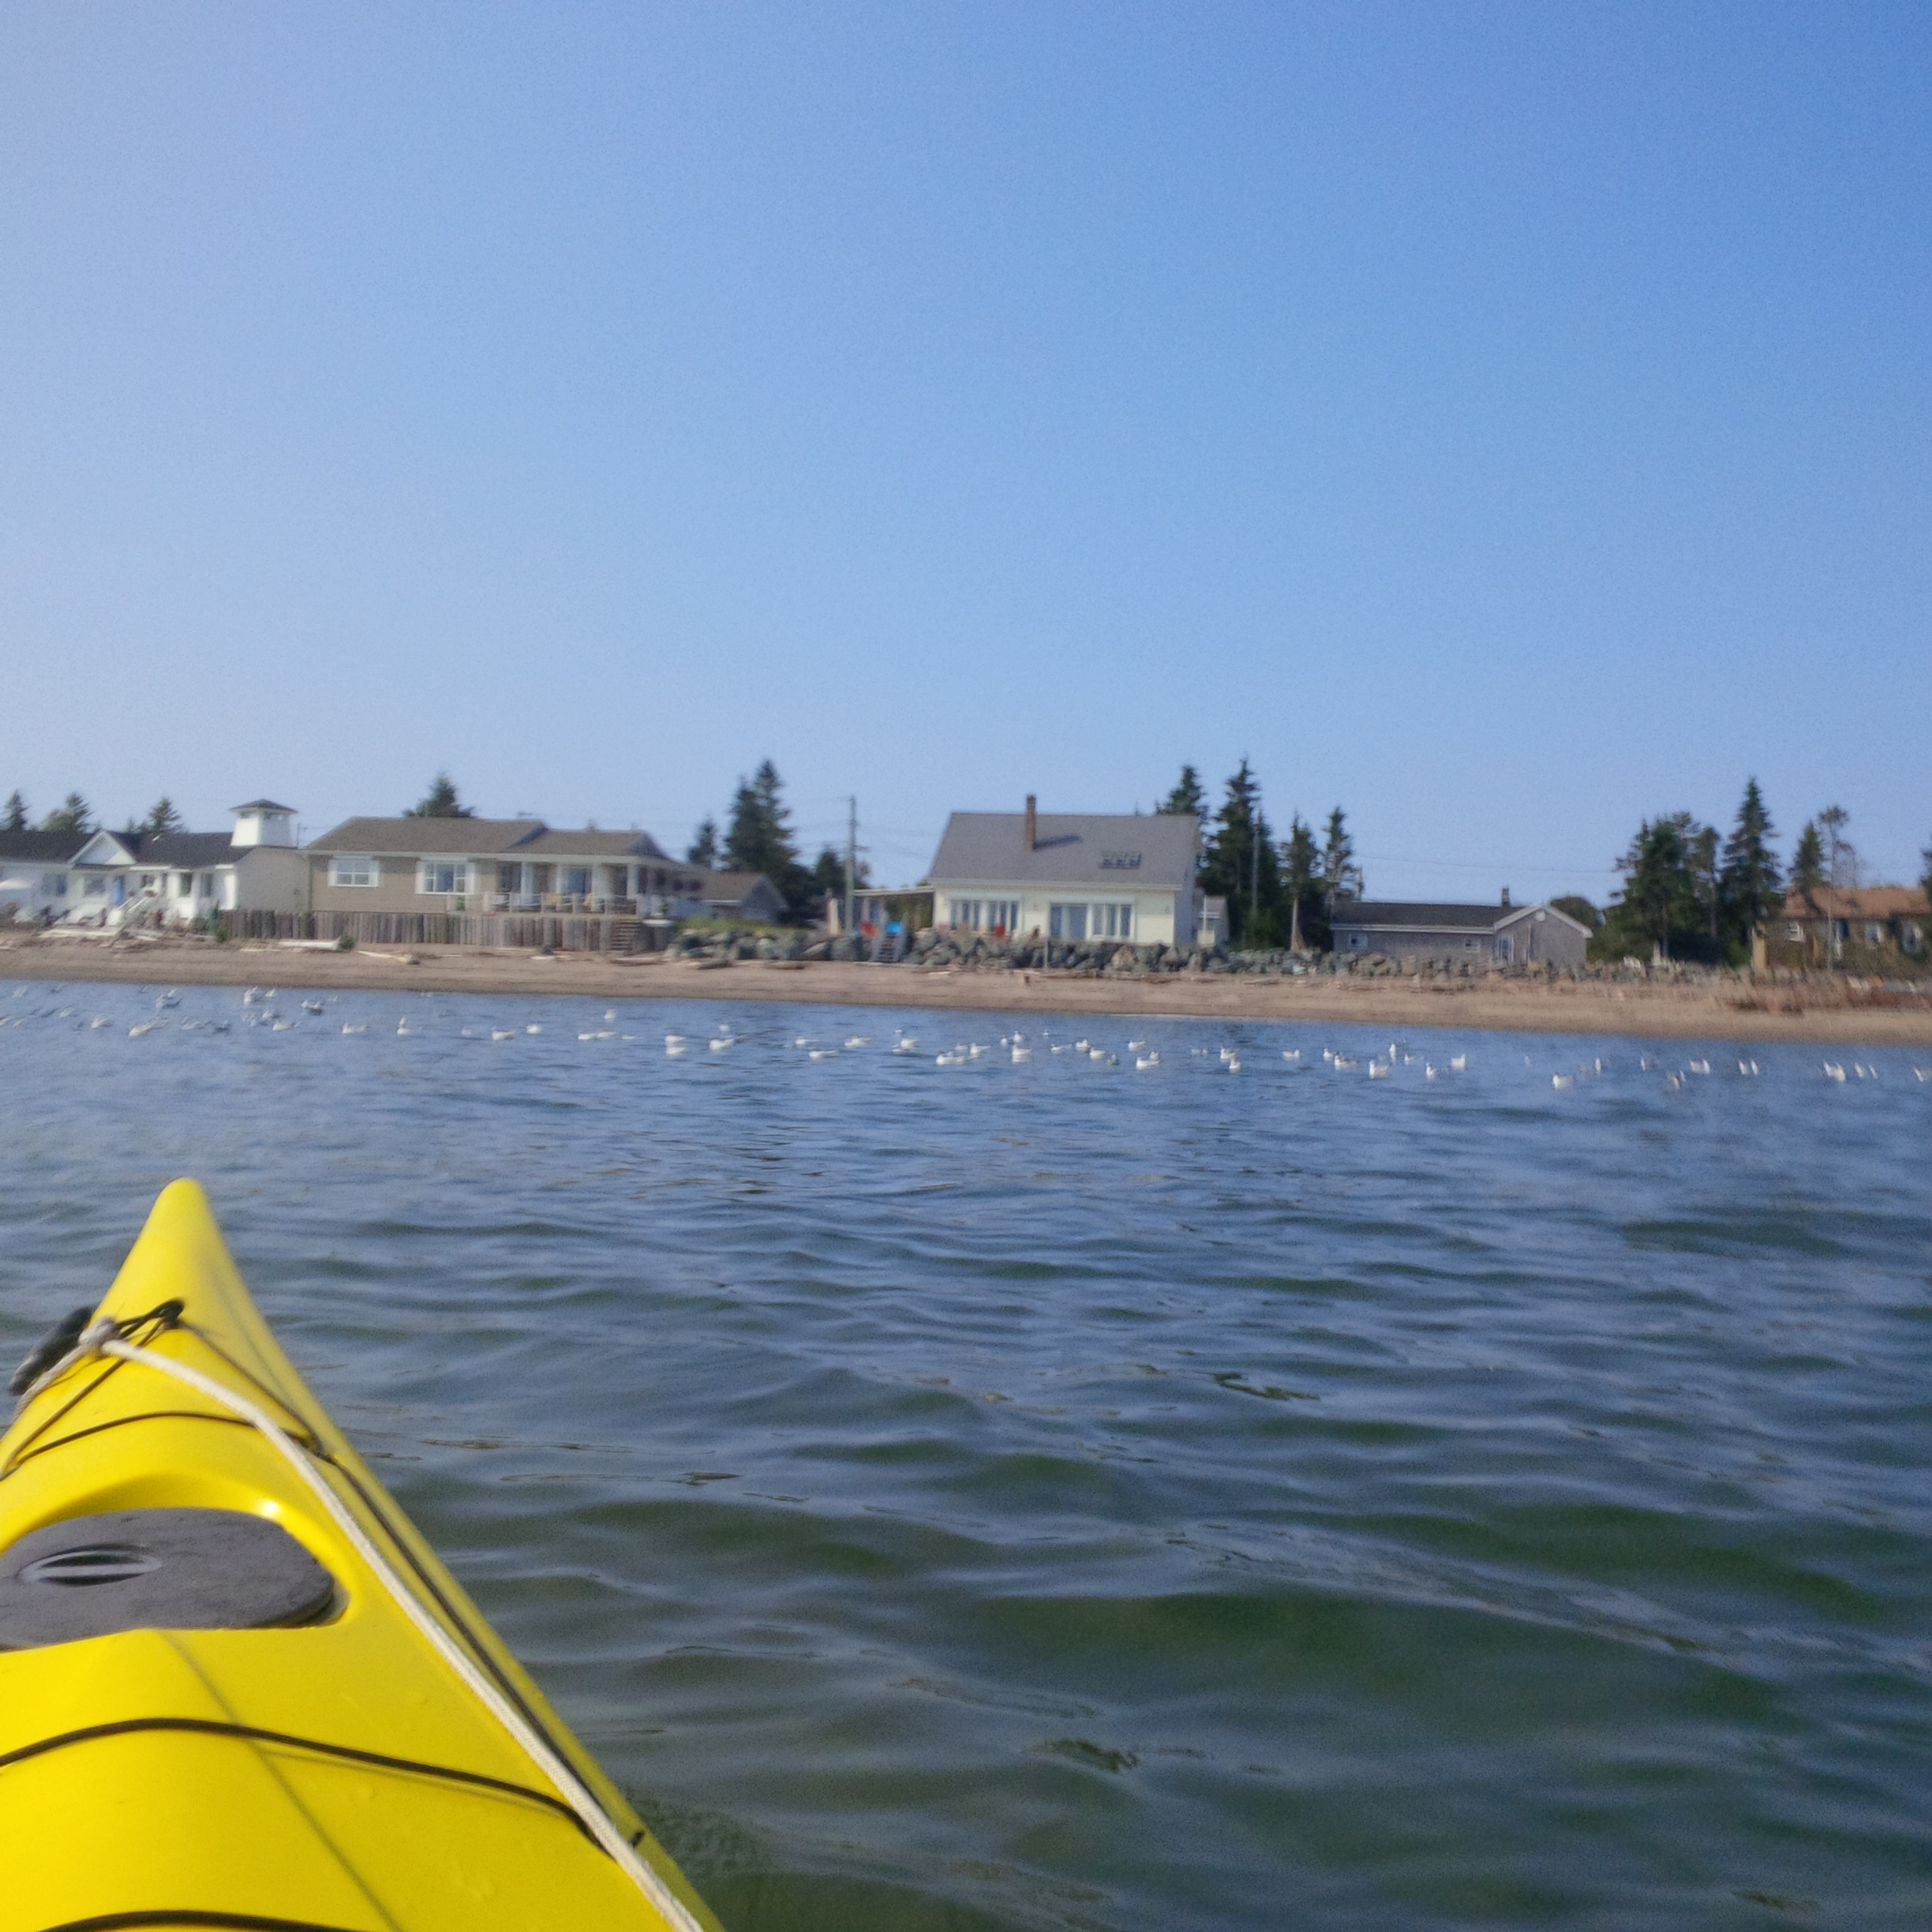 View of Seascape from a Kayak